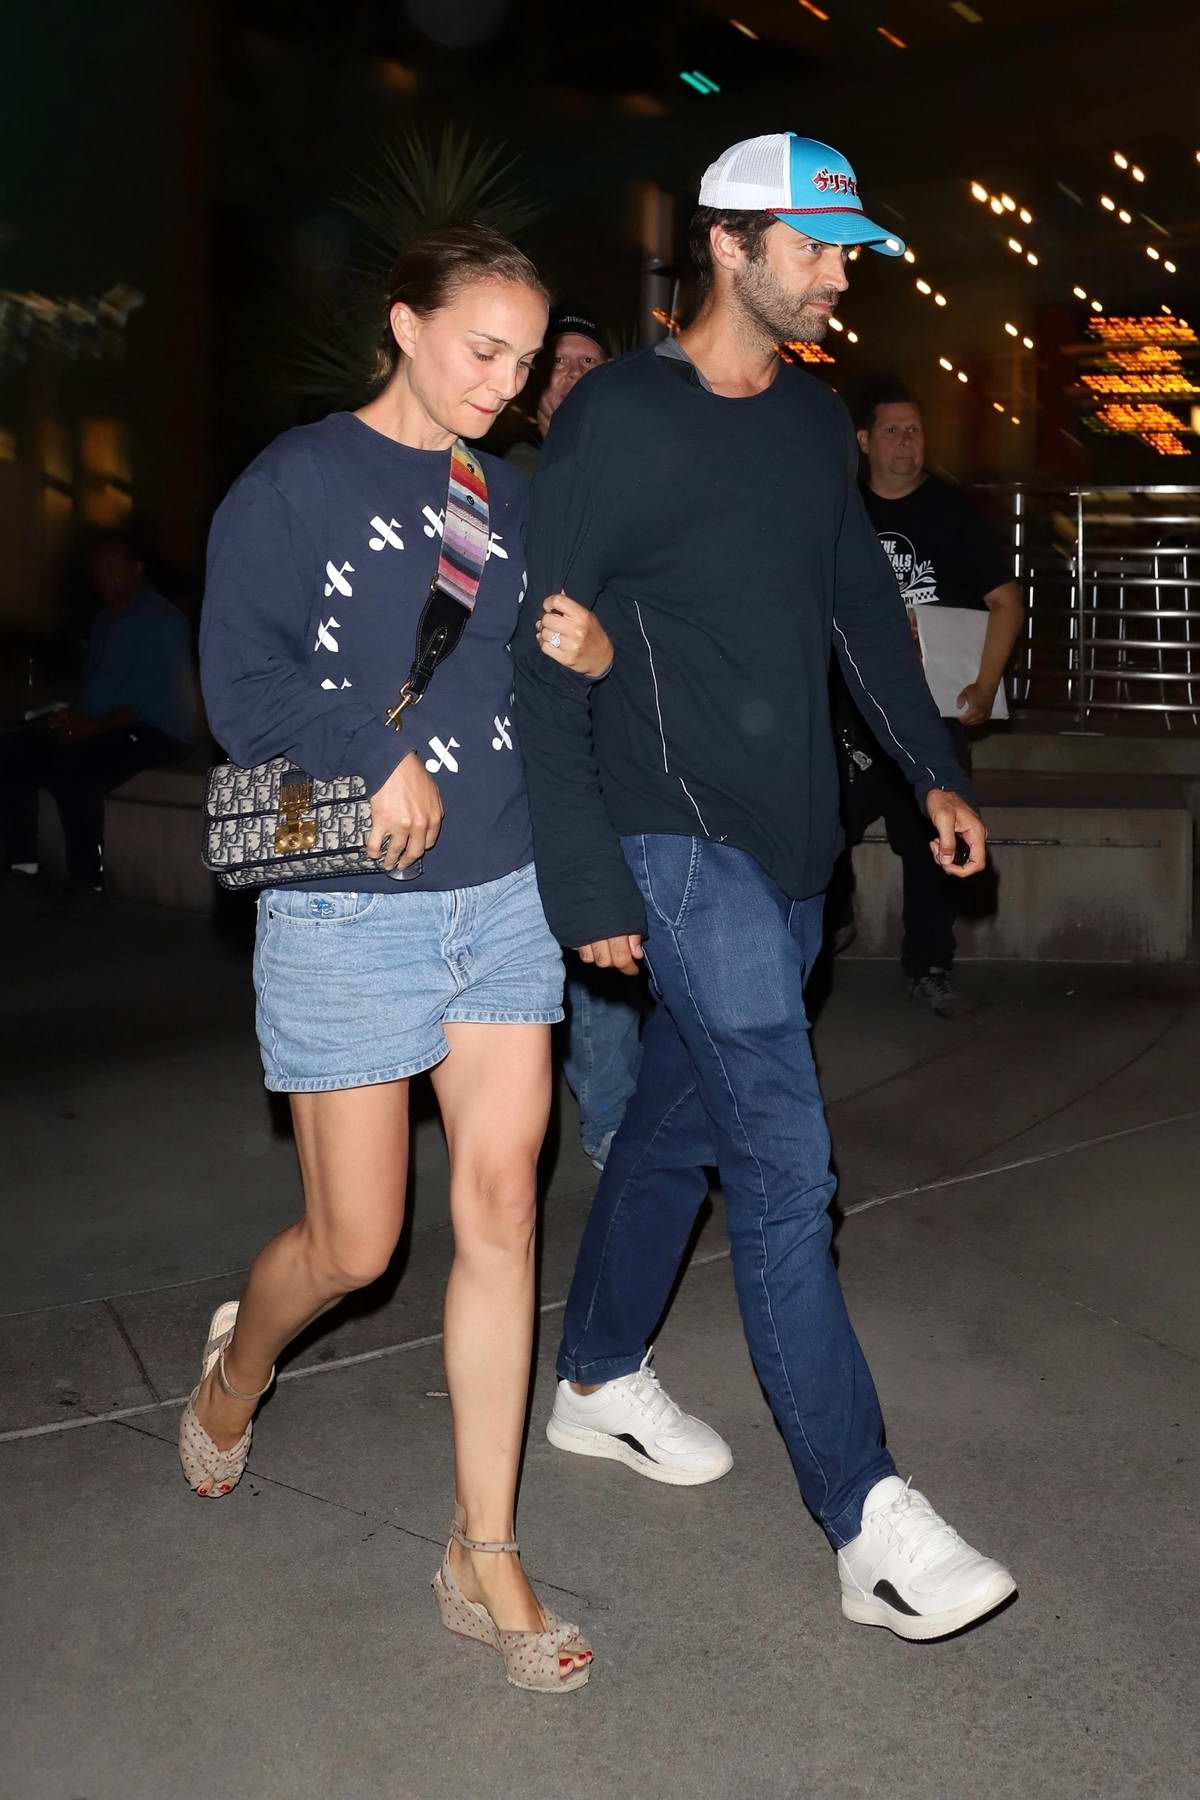 Natalie Portman and husband Benjamin Millepied enjoy a movie date night at Arclight in Hollywood, California